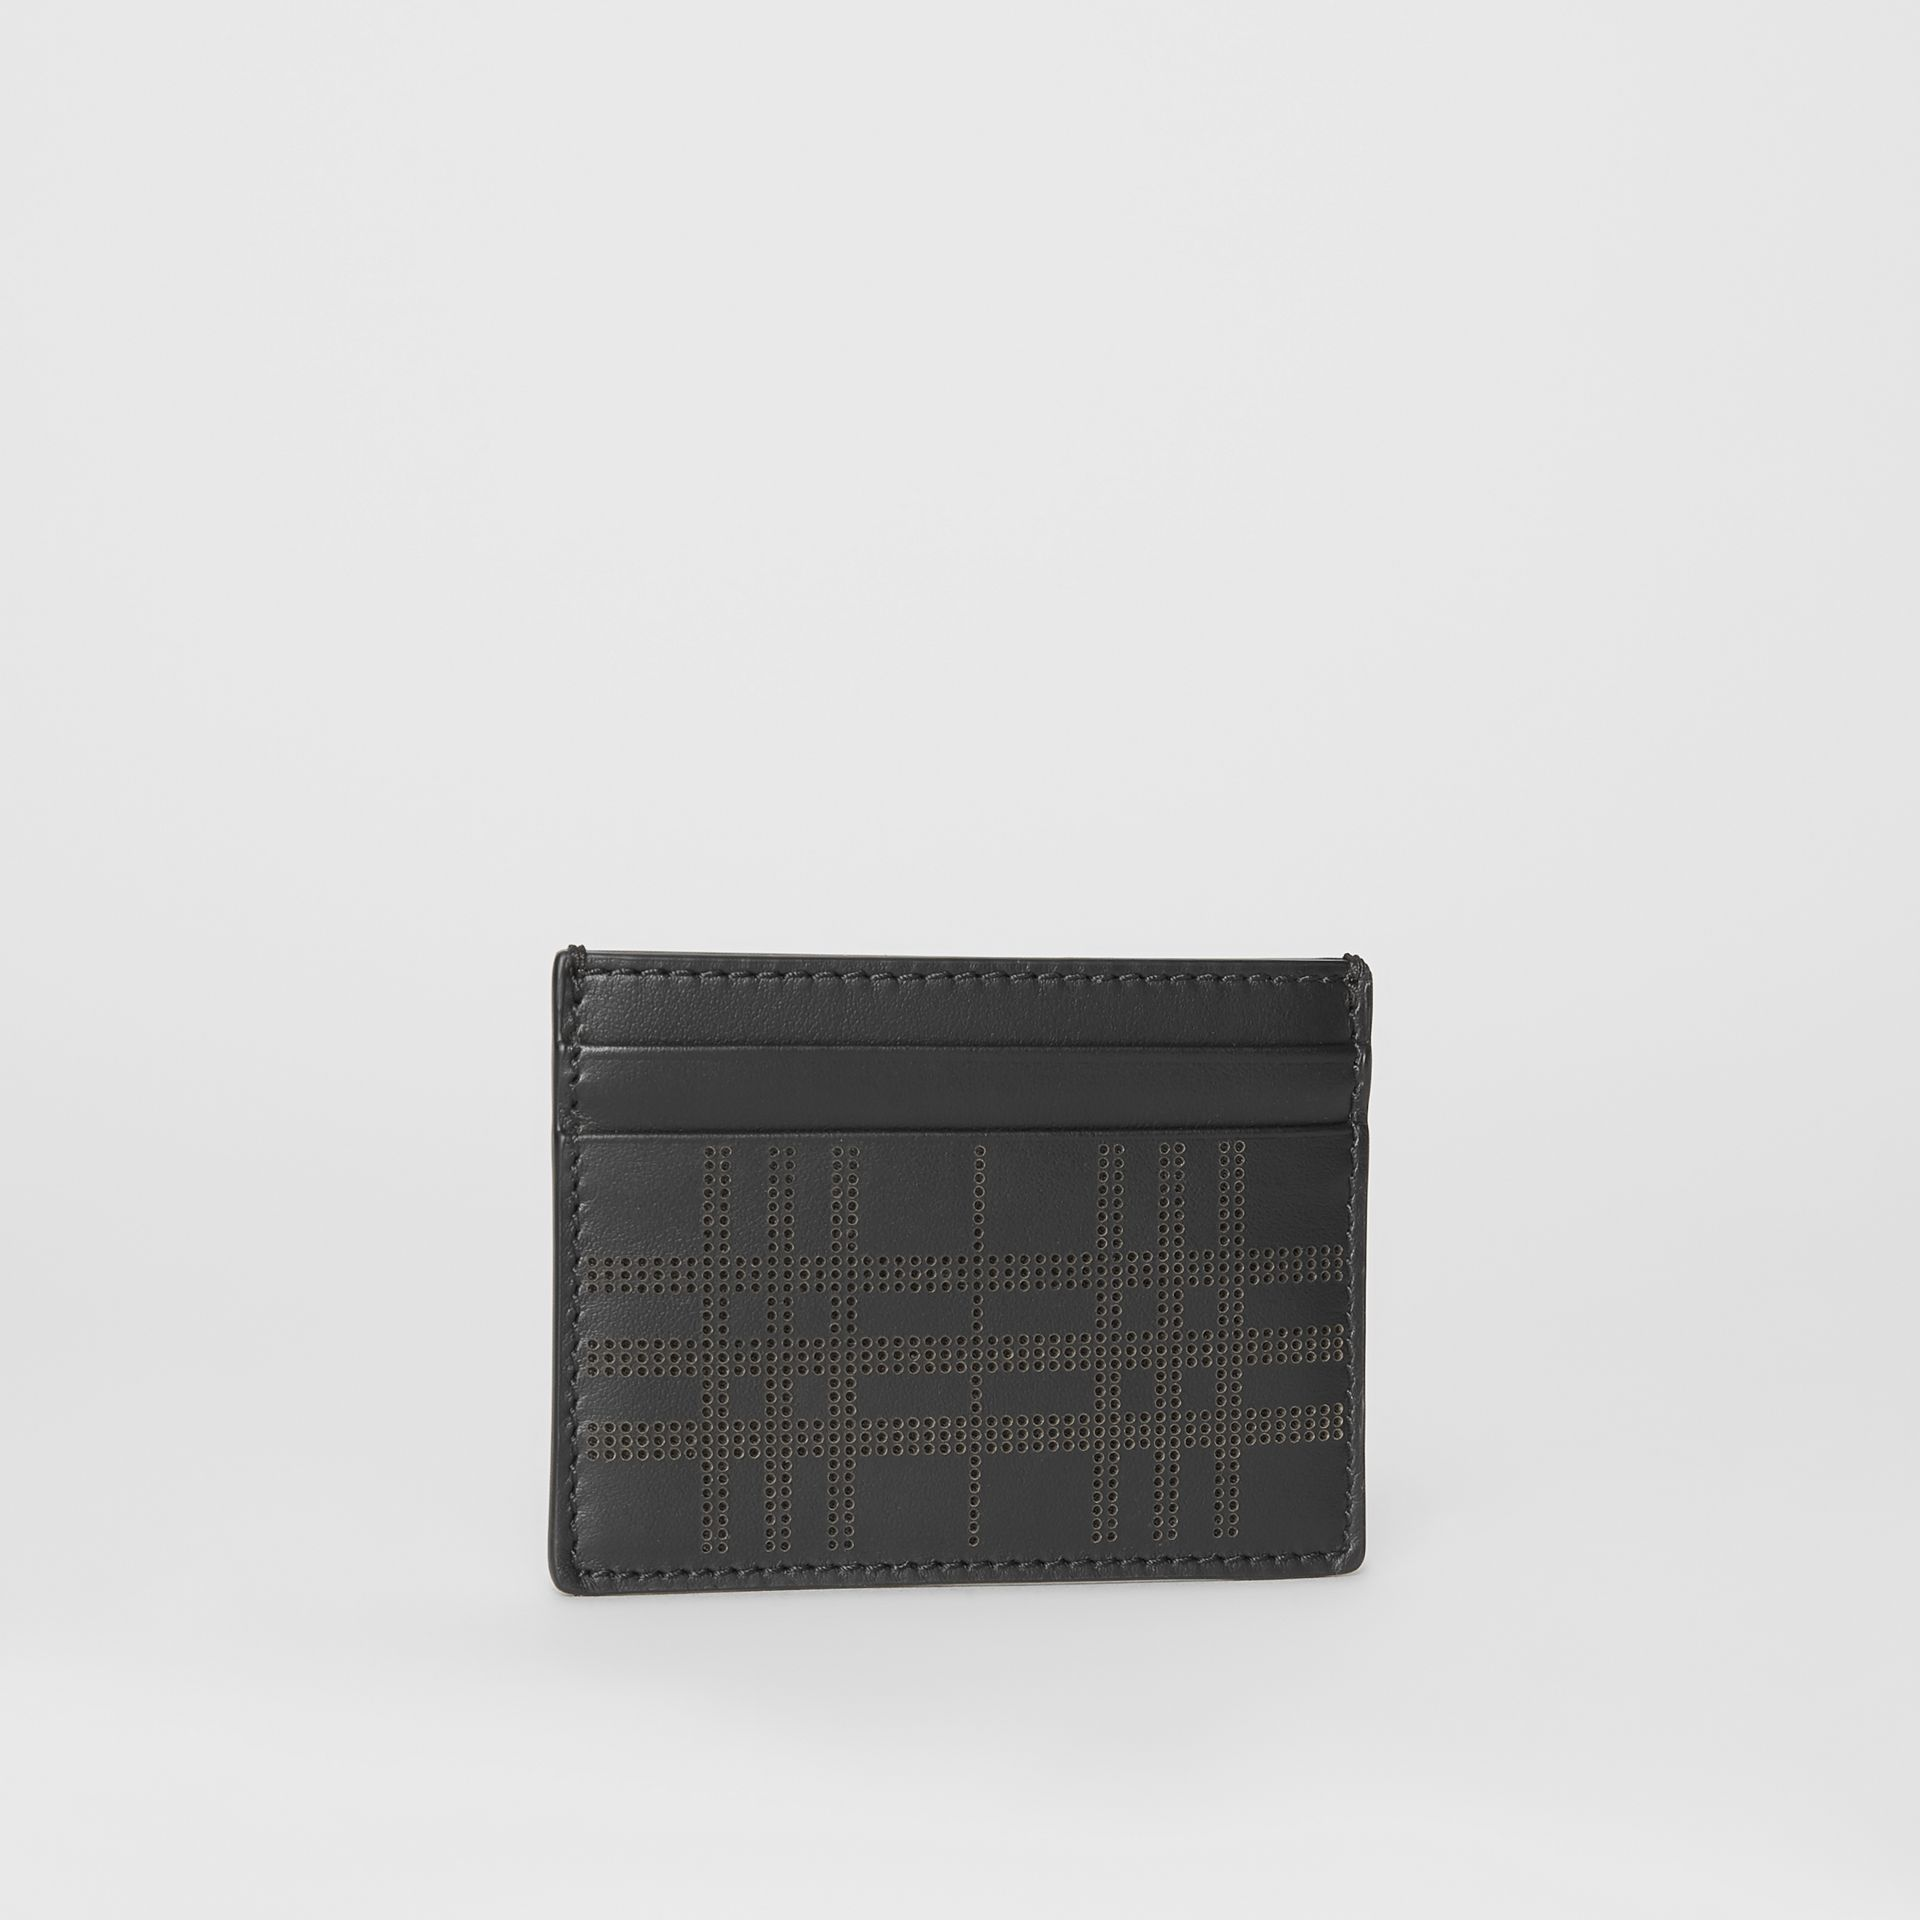 Porte-cartes en cuir à motif check perforé (Noir) | Burberry Canada - photo de la galerie 4